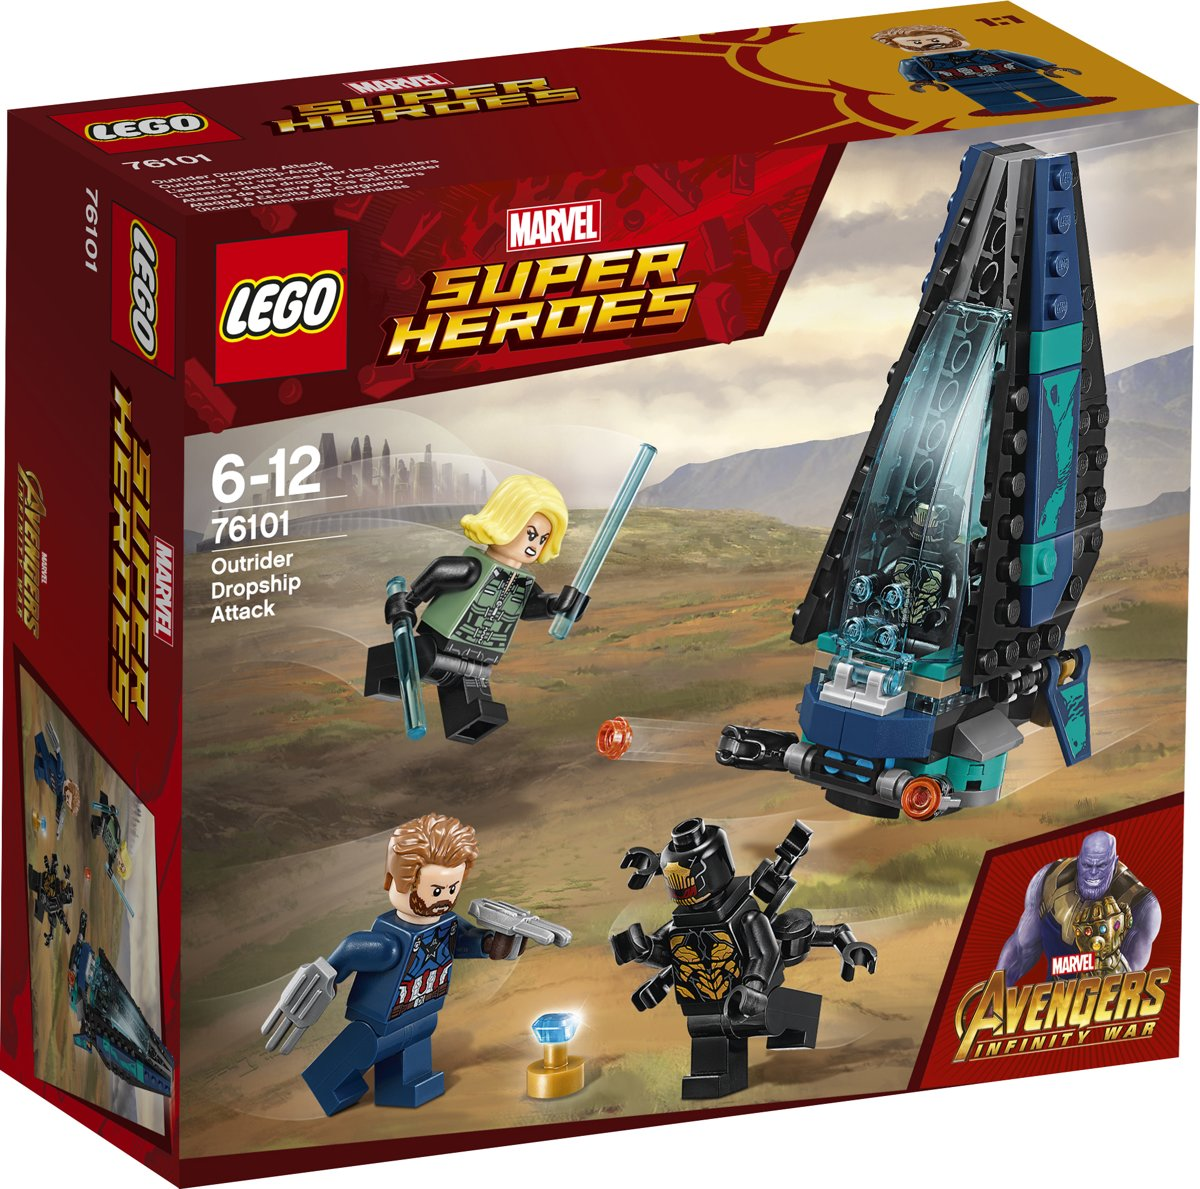 LEGO Super Heroes Outriderdropshipaanval - 76101